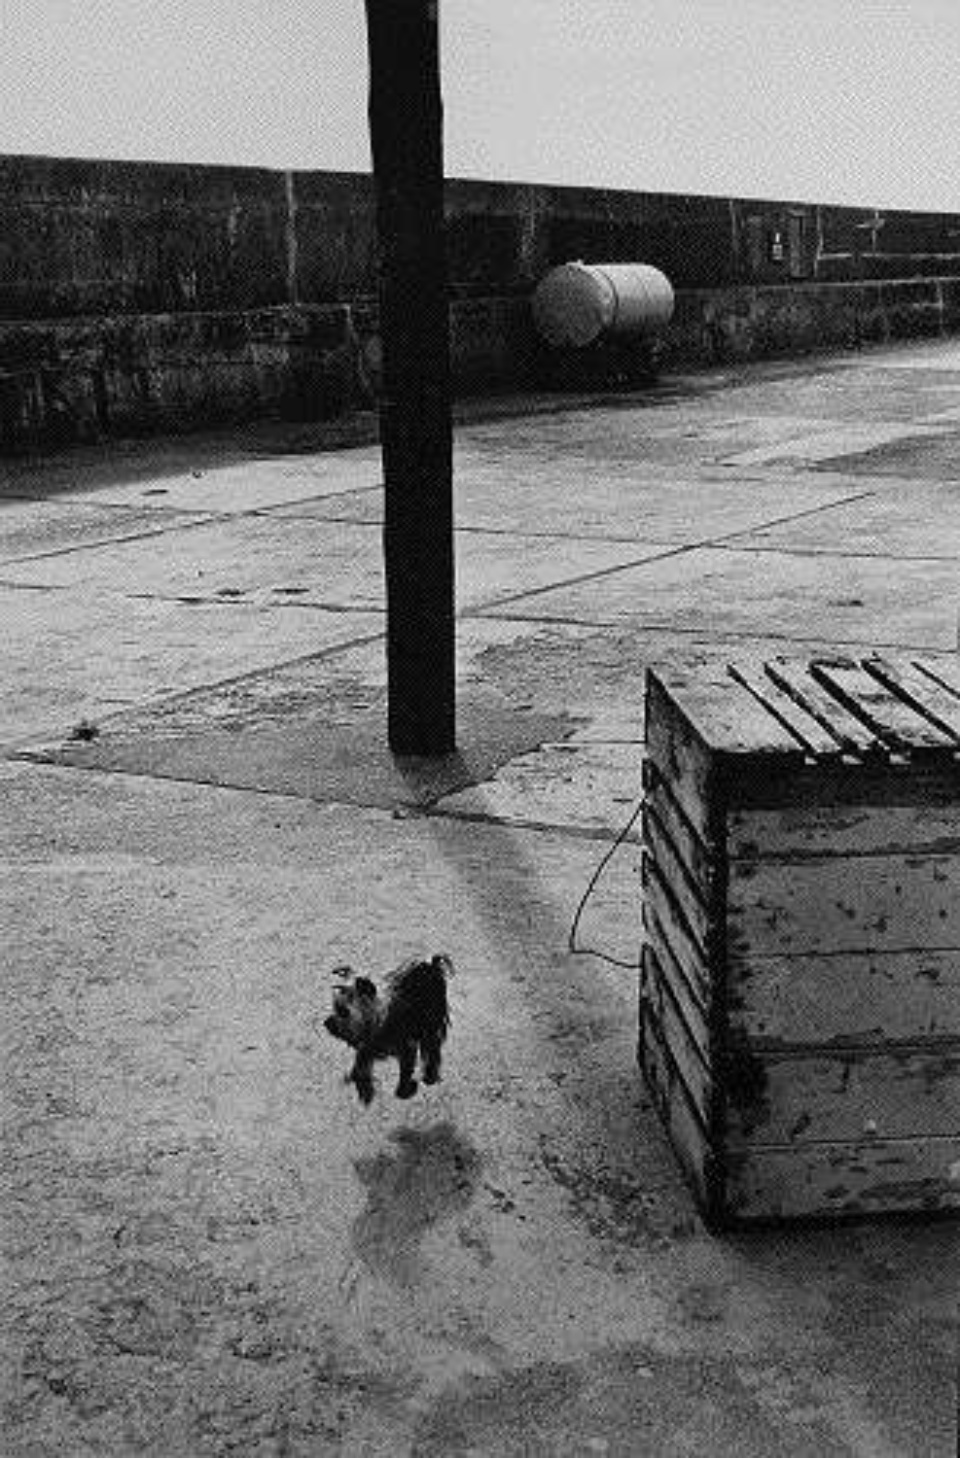 Elliott Erwitt Ballycotton Ireland, 1968 Gelatin Silver Print Signed, titled and dated on verso